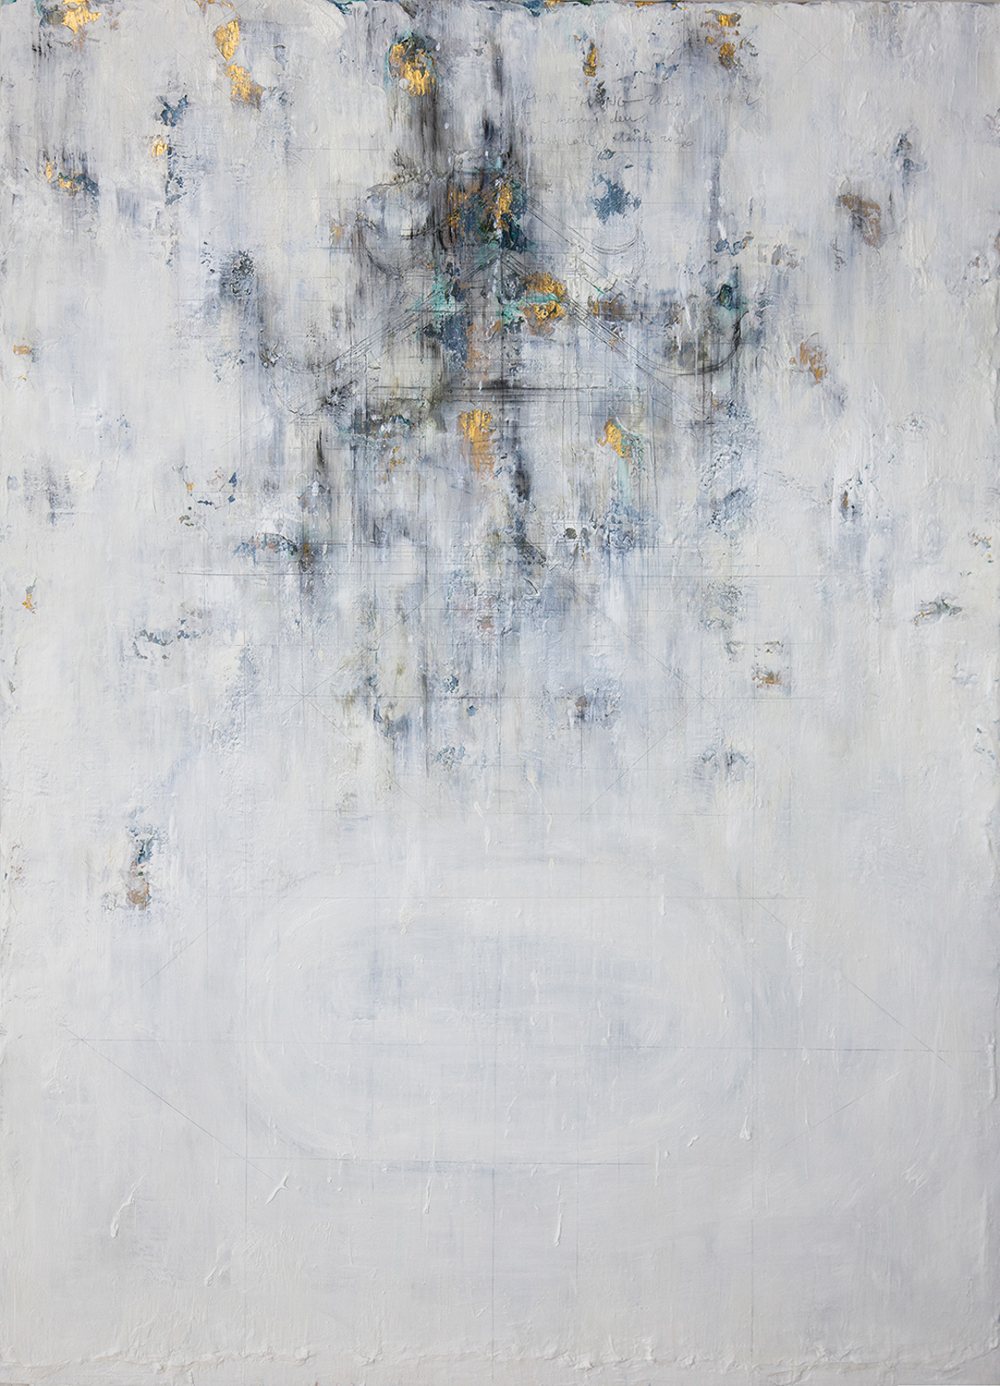 Foggy Days At Lake,  2016, Mixed Media on Canvas, 150 x 110 cm, HA Manh Thang